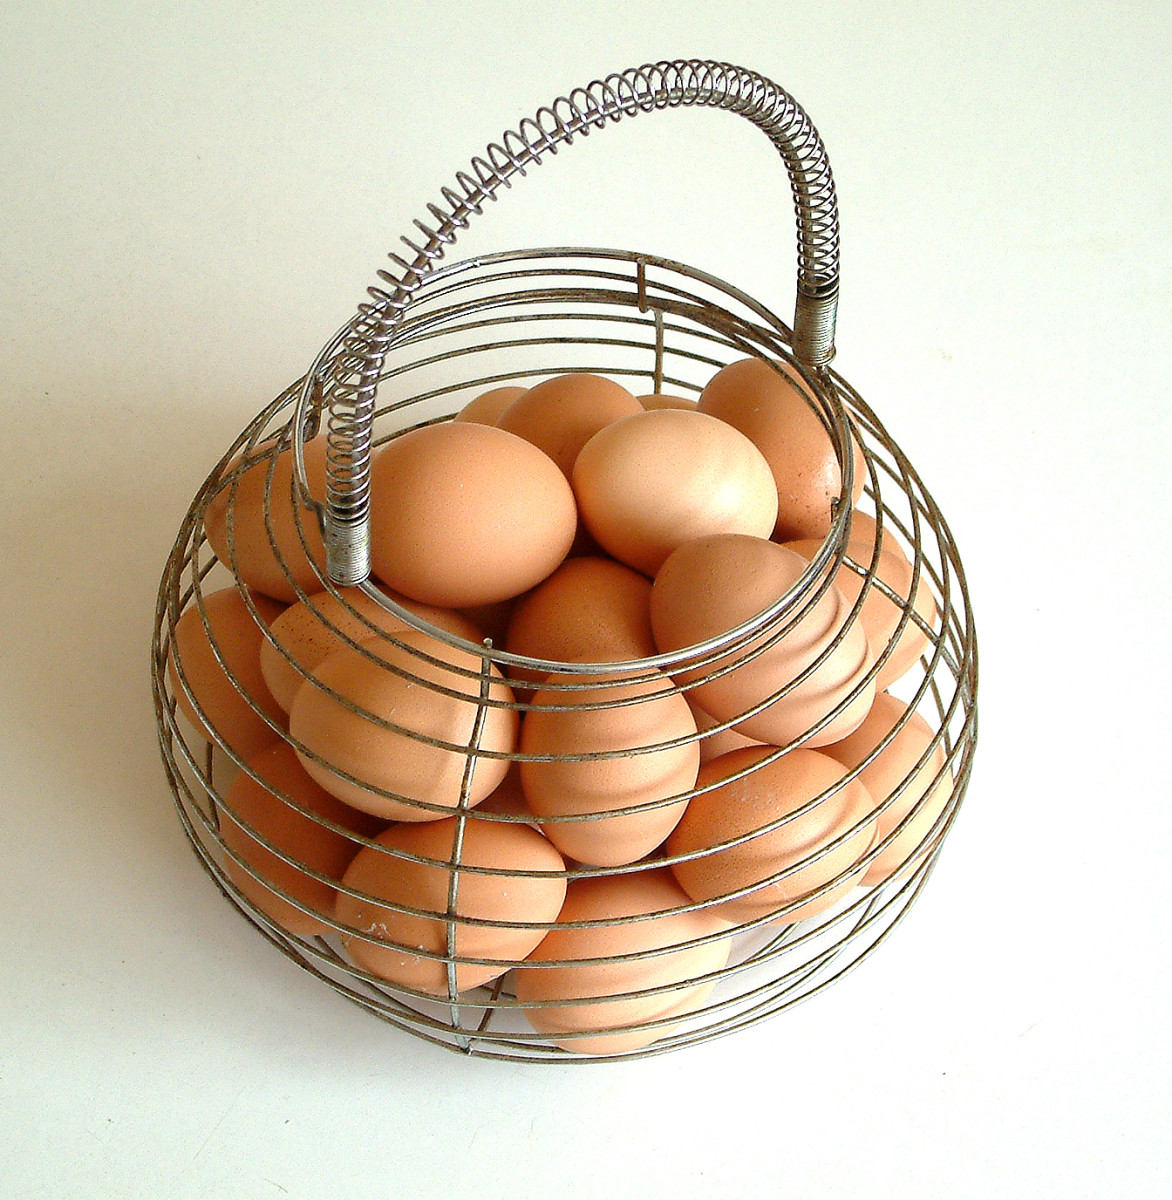 Eggs are nutritious but can be allergenic for some people.